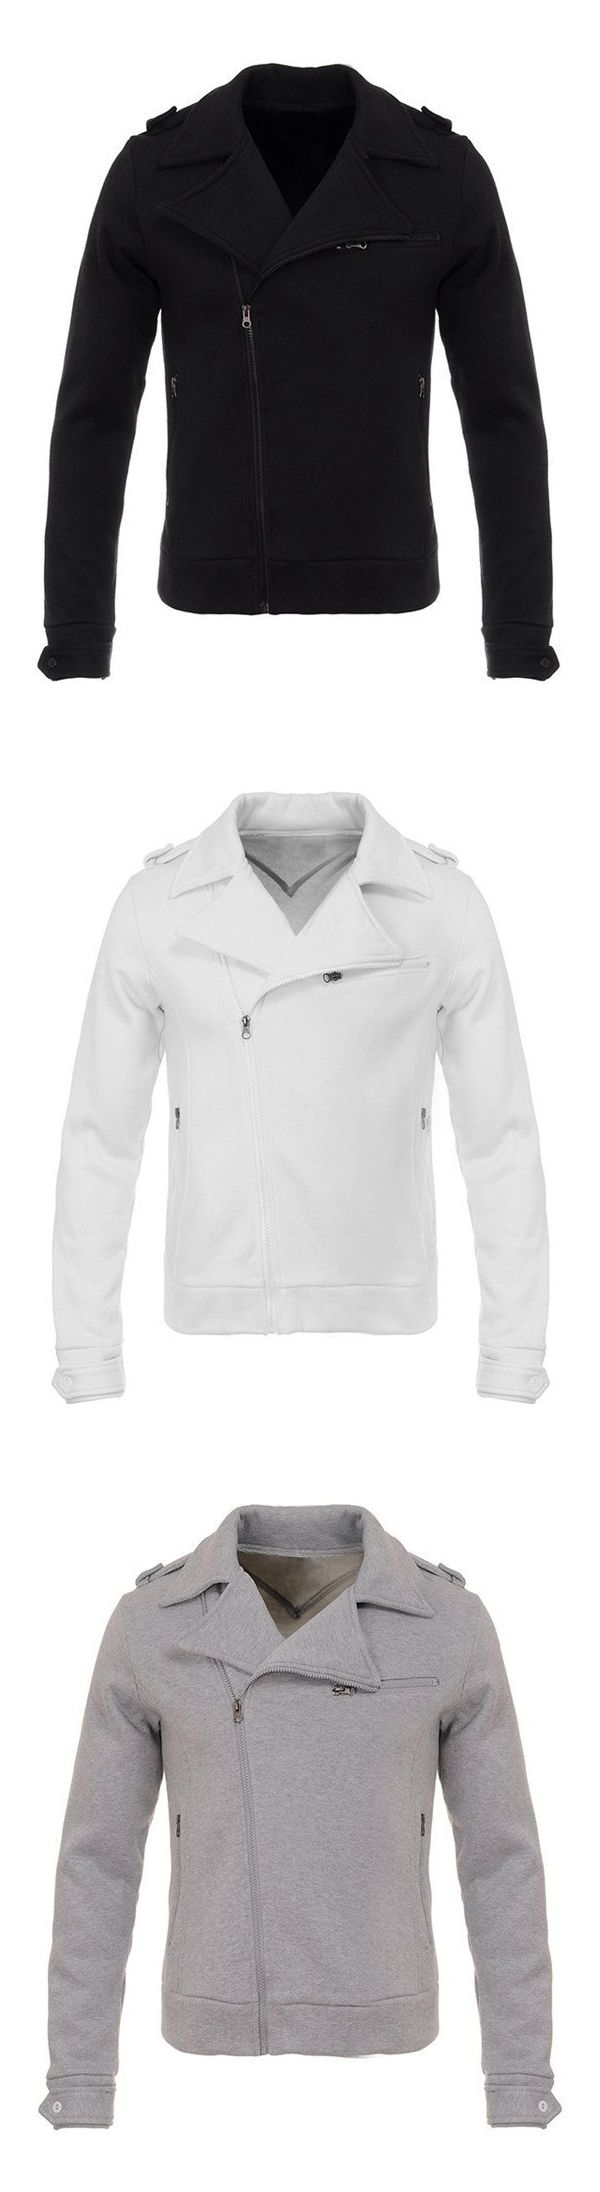 Only $35.99!This is a very fashionable men's slim jacket, features zipper decorative,shoulder strap and several zipper pocket.  Here plus a certain warmth inside the thermal effect,It's very suitable for autumn and winter wear, you can wear it at work,leisure,parties and other occasions, Now Free Shipping & Easy Return. Search more fashion clothing at vogueclips.com